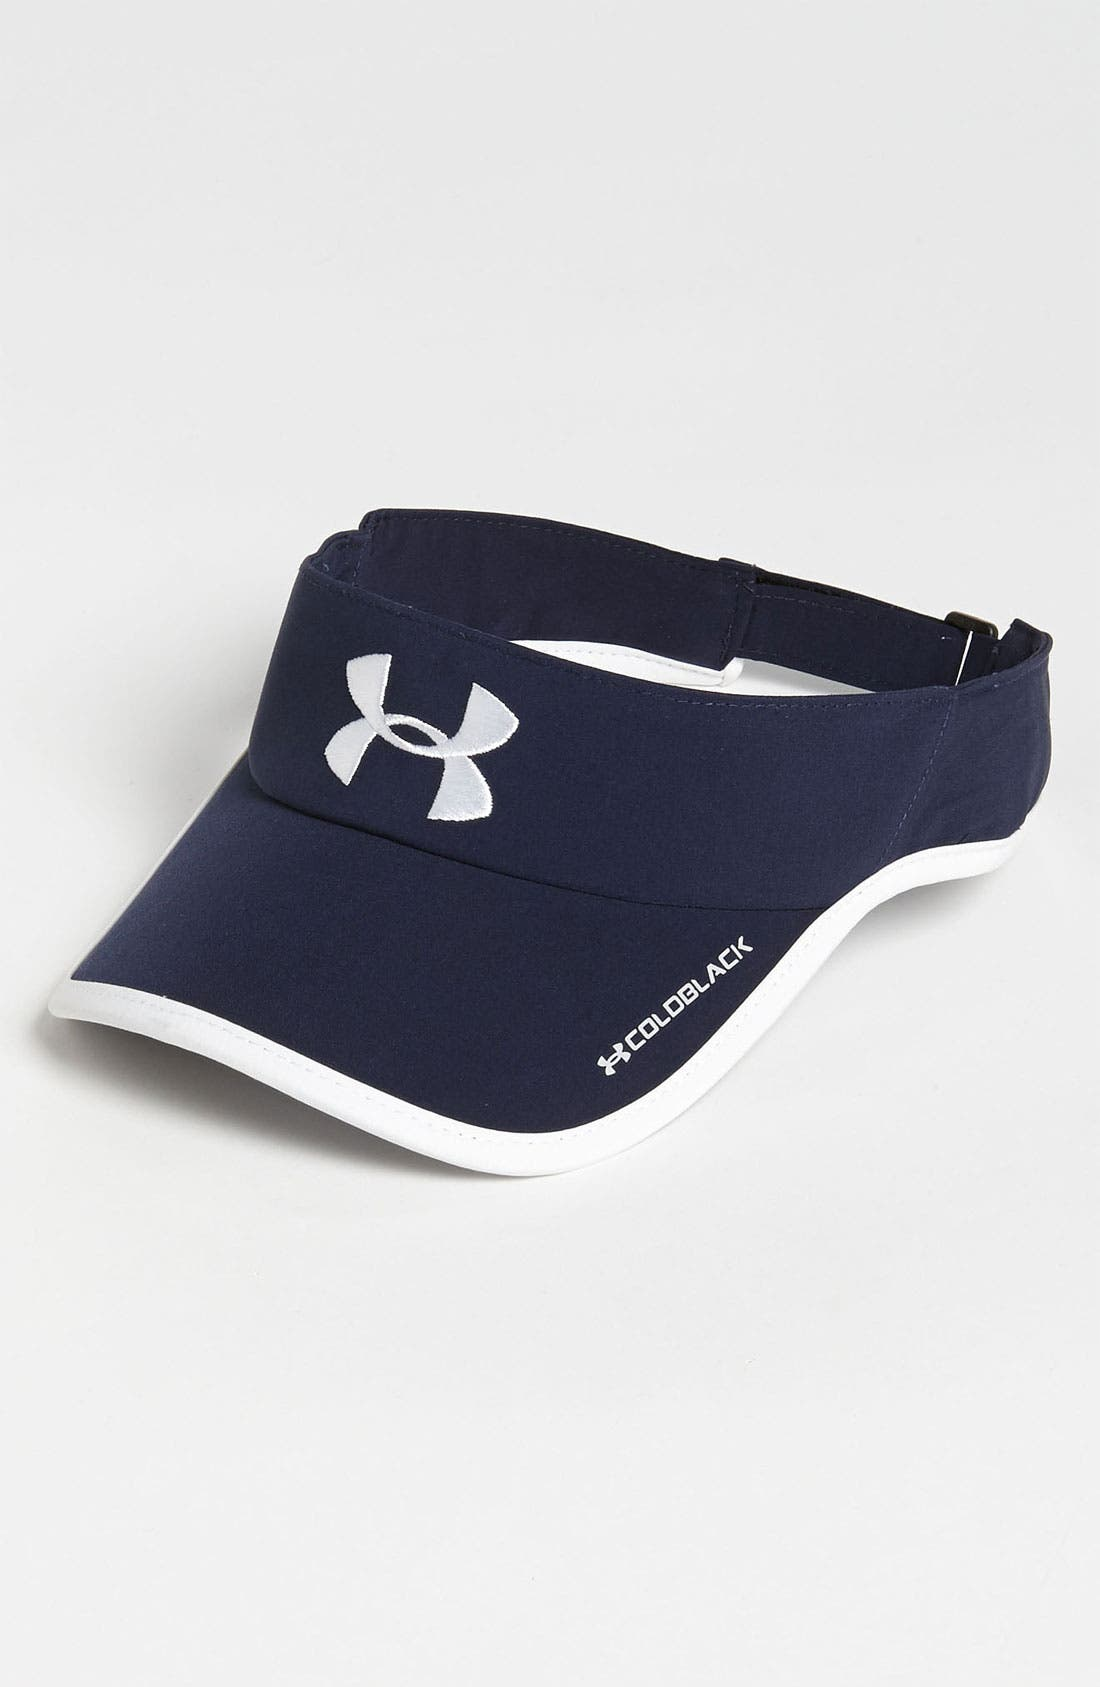 Alternate Image 1 Selected - Under Armour 'Shadow' Visor